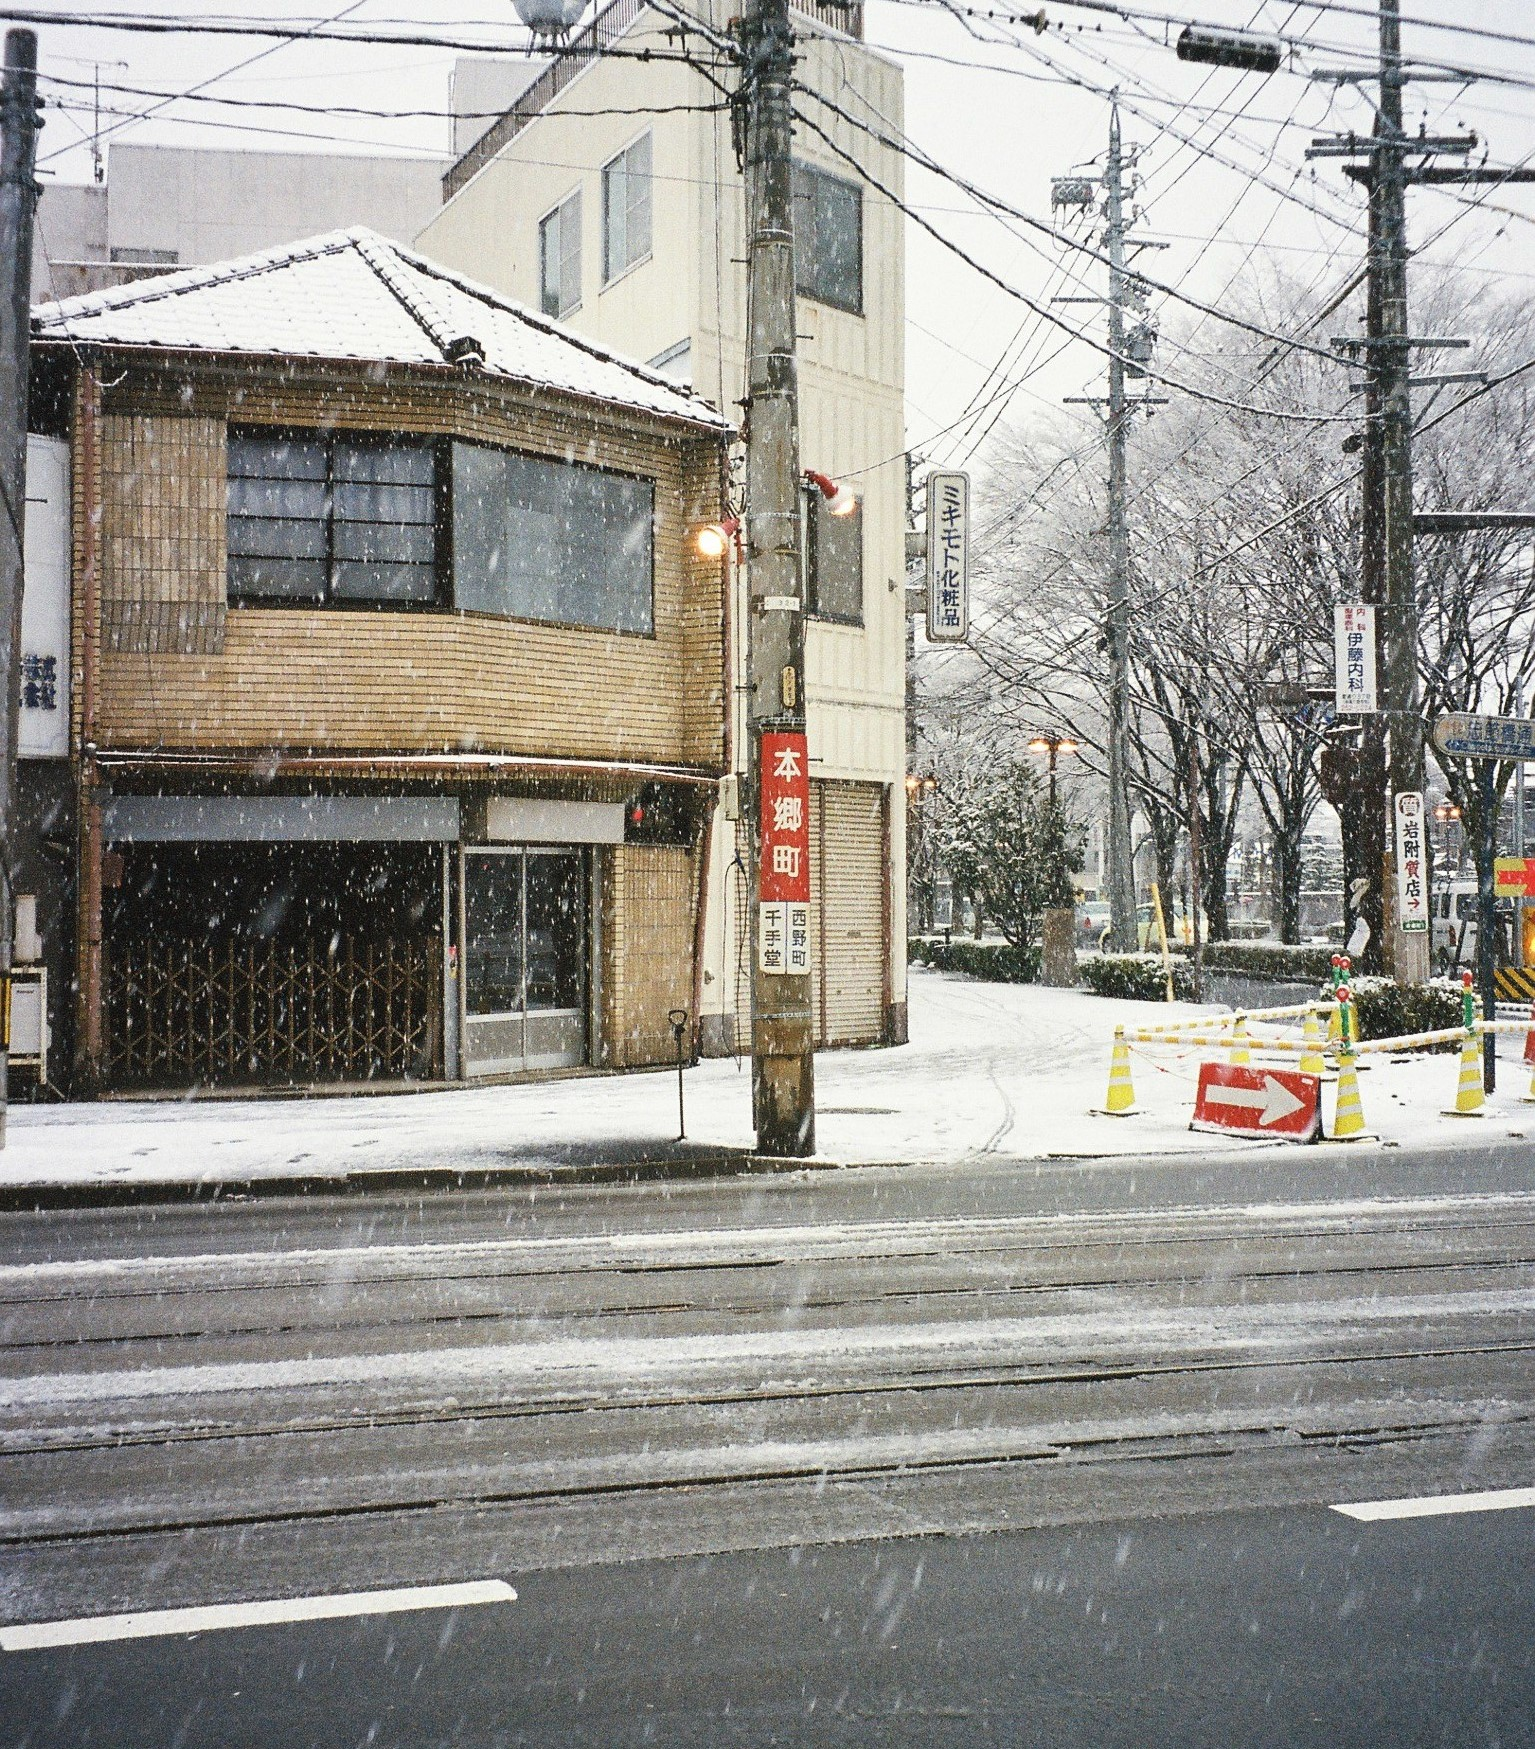 https://upload.wikimedia.org/wikipedia/commons/7/76/Meitetu_Hongocho_Station_200412.jpg